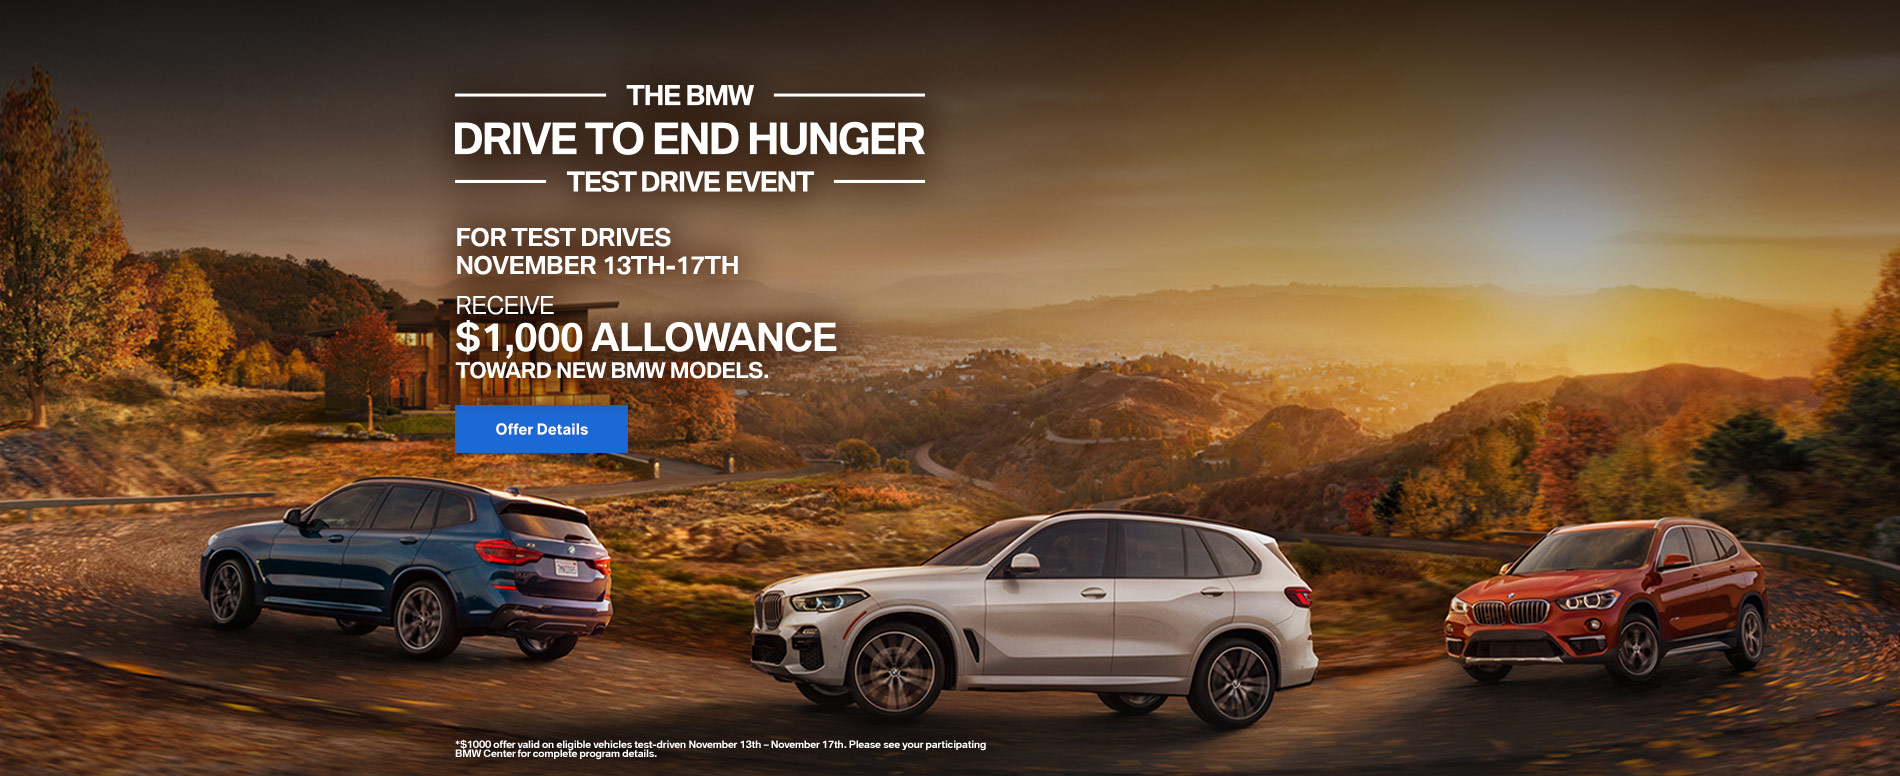 Test Drive to End Hunger